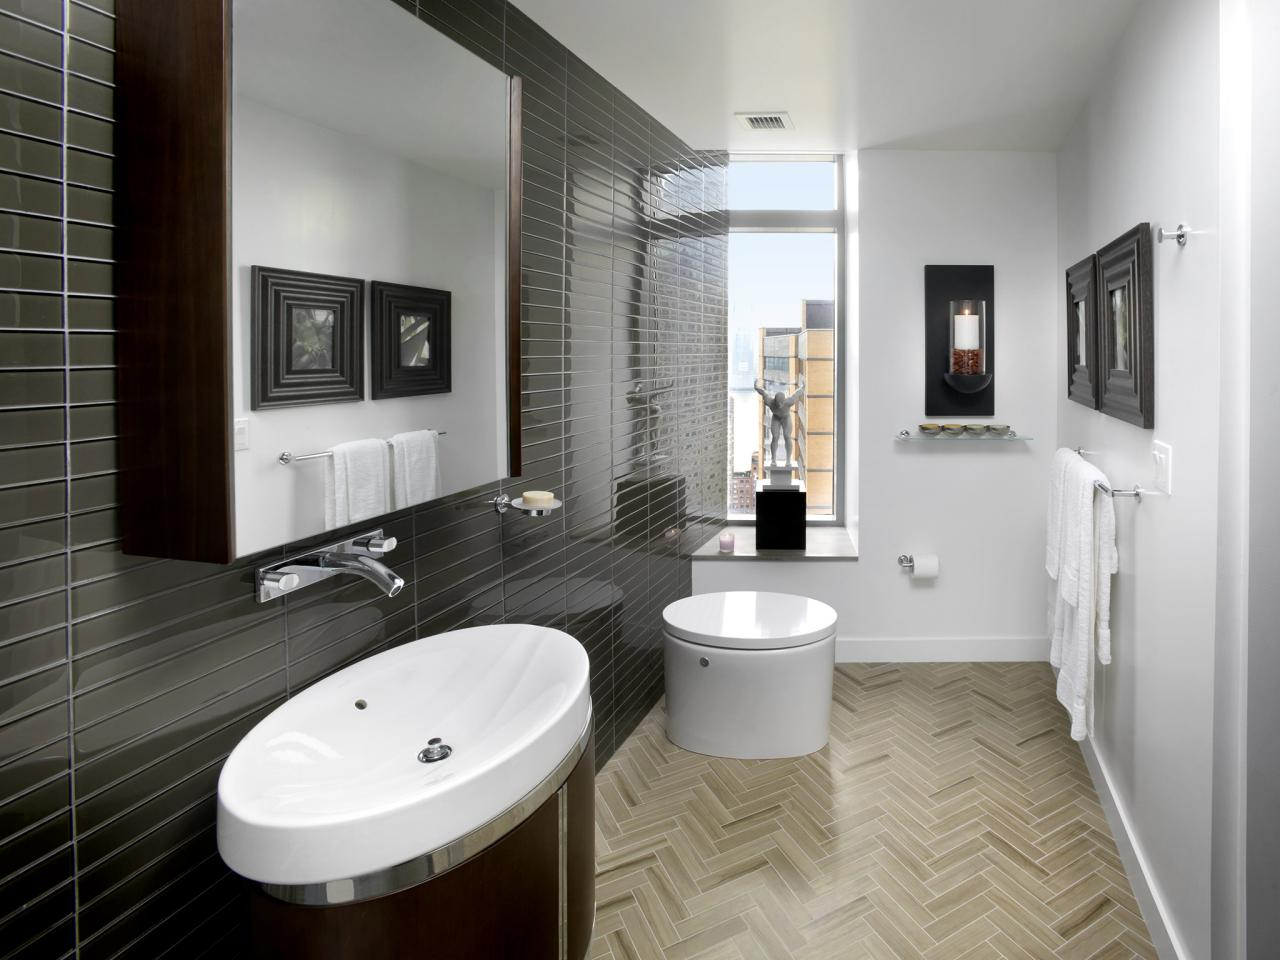 small bathroom decorating ideas - Restroom Design Ideas